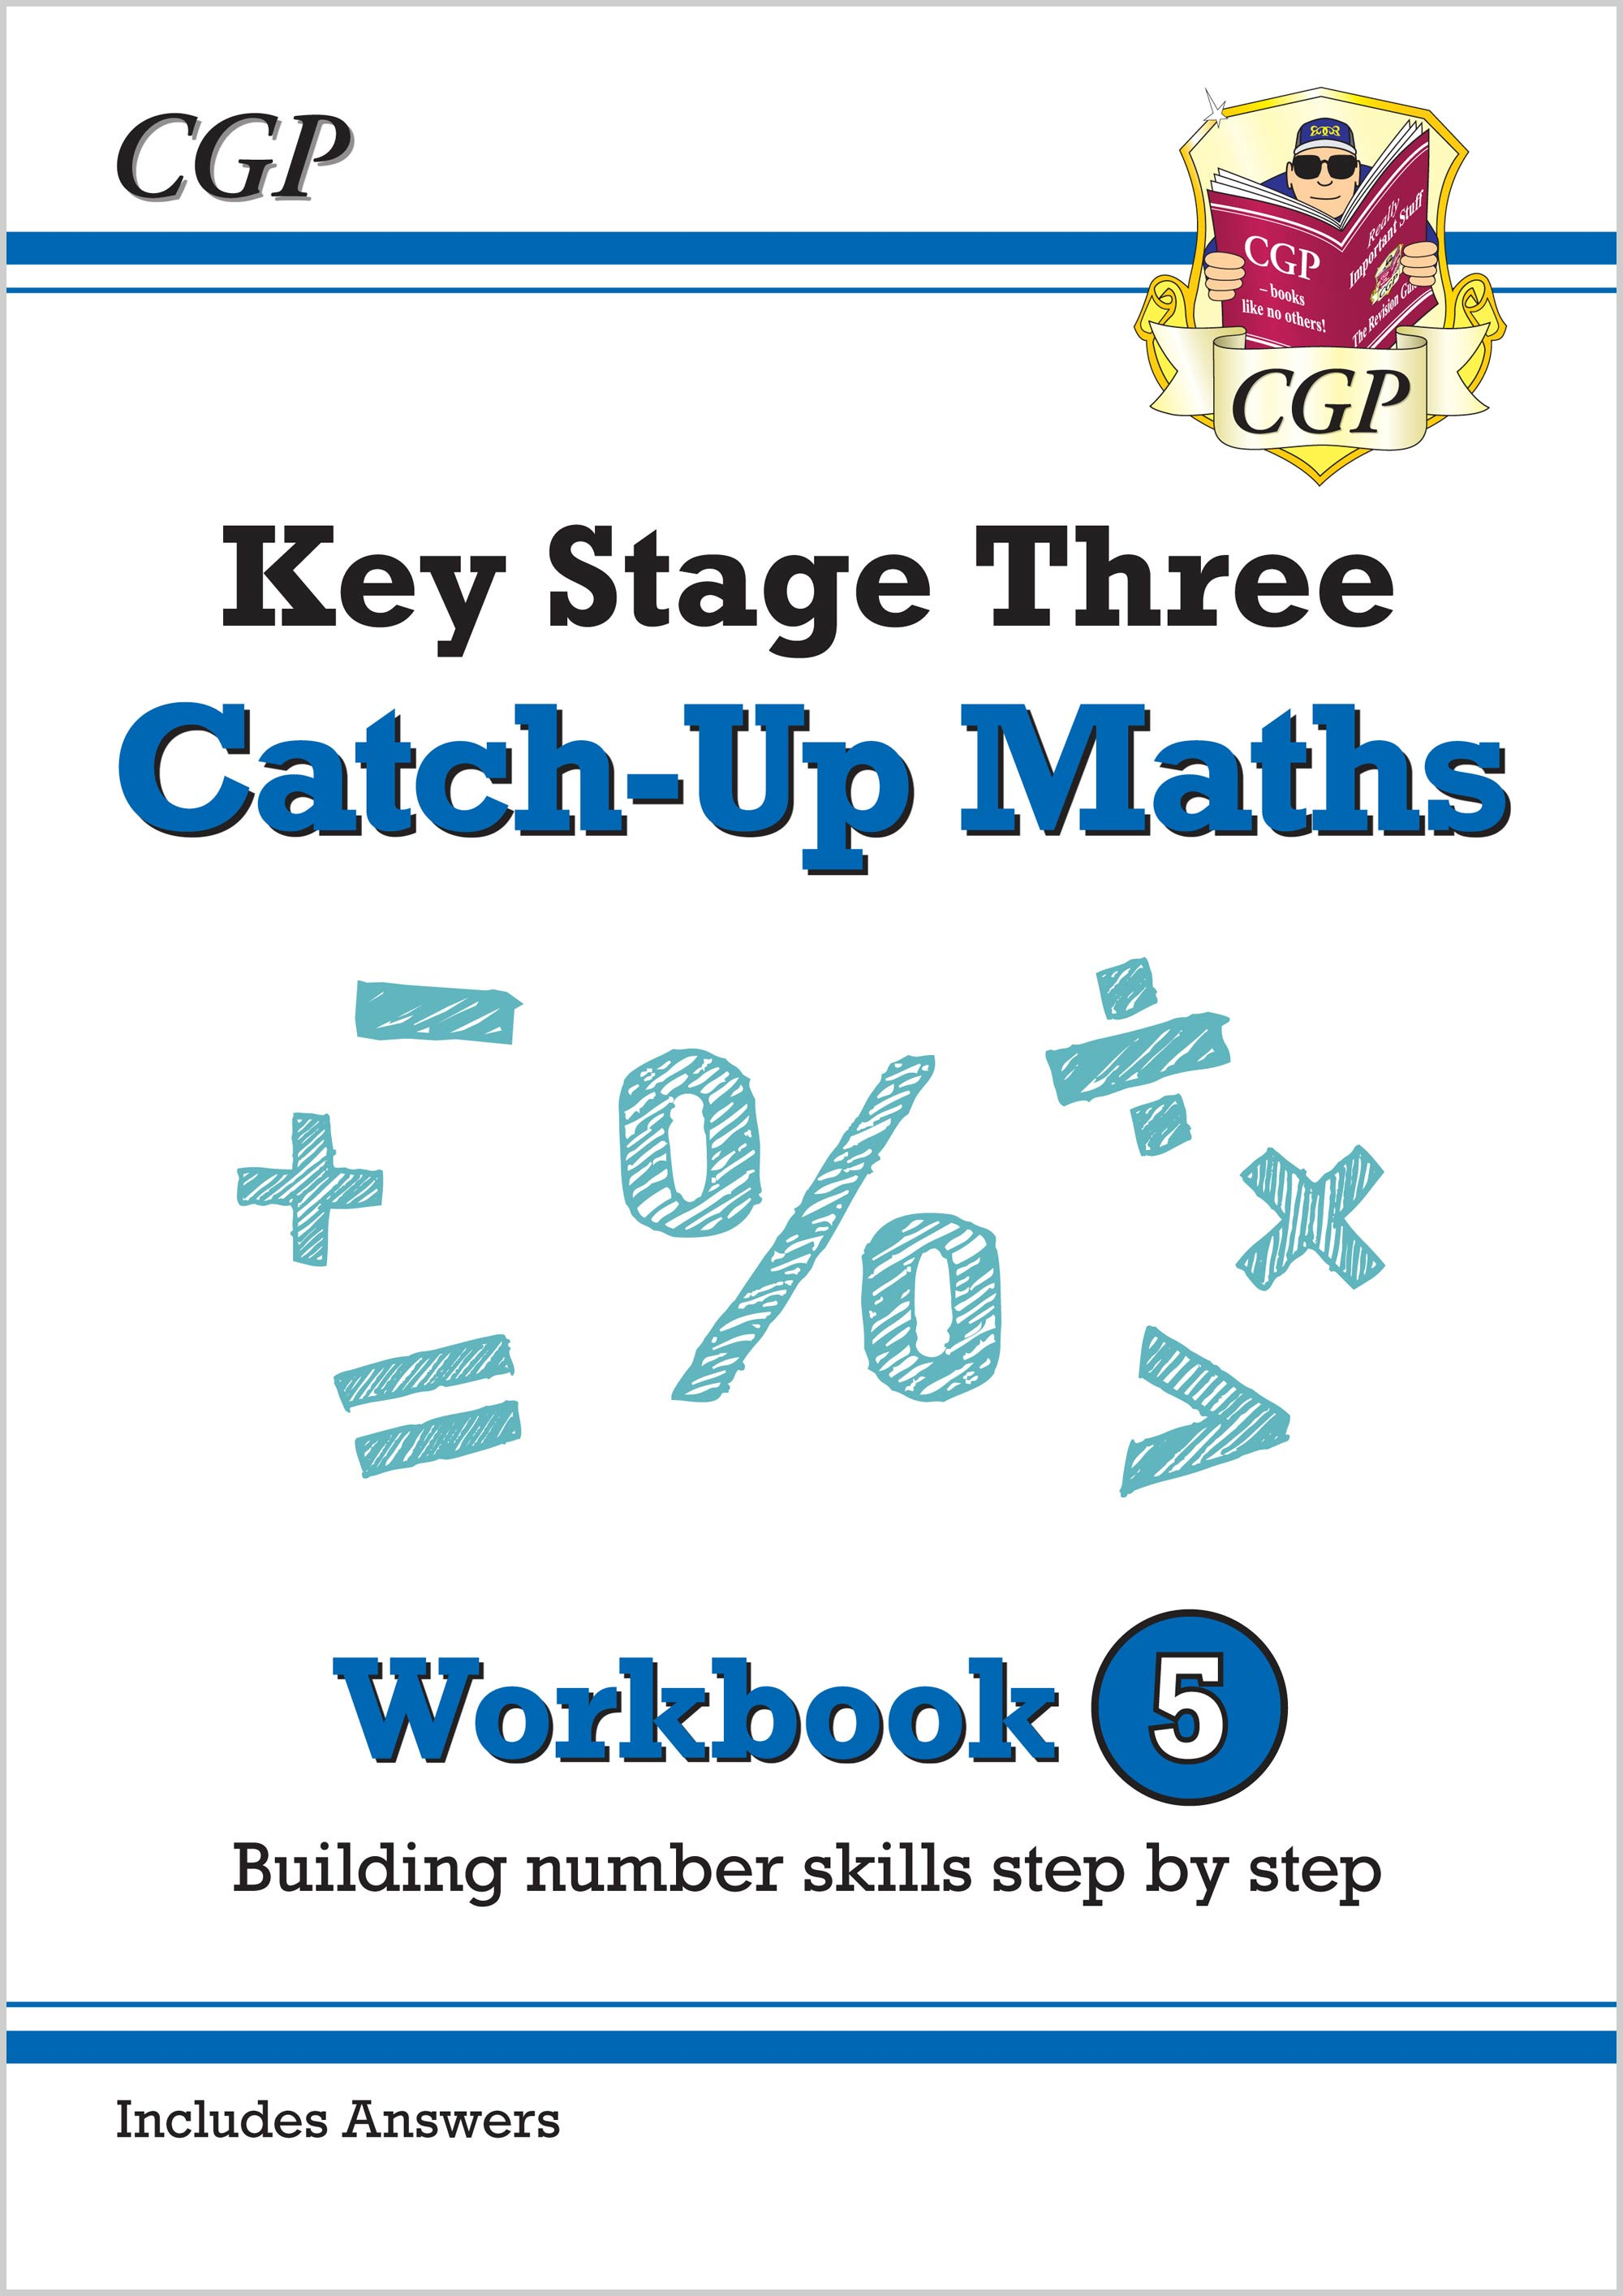 MBNW531 - KS3 Maths Catch-Up Workbook 5 (with Answers)